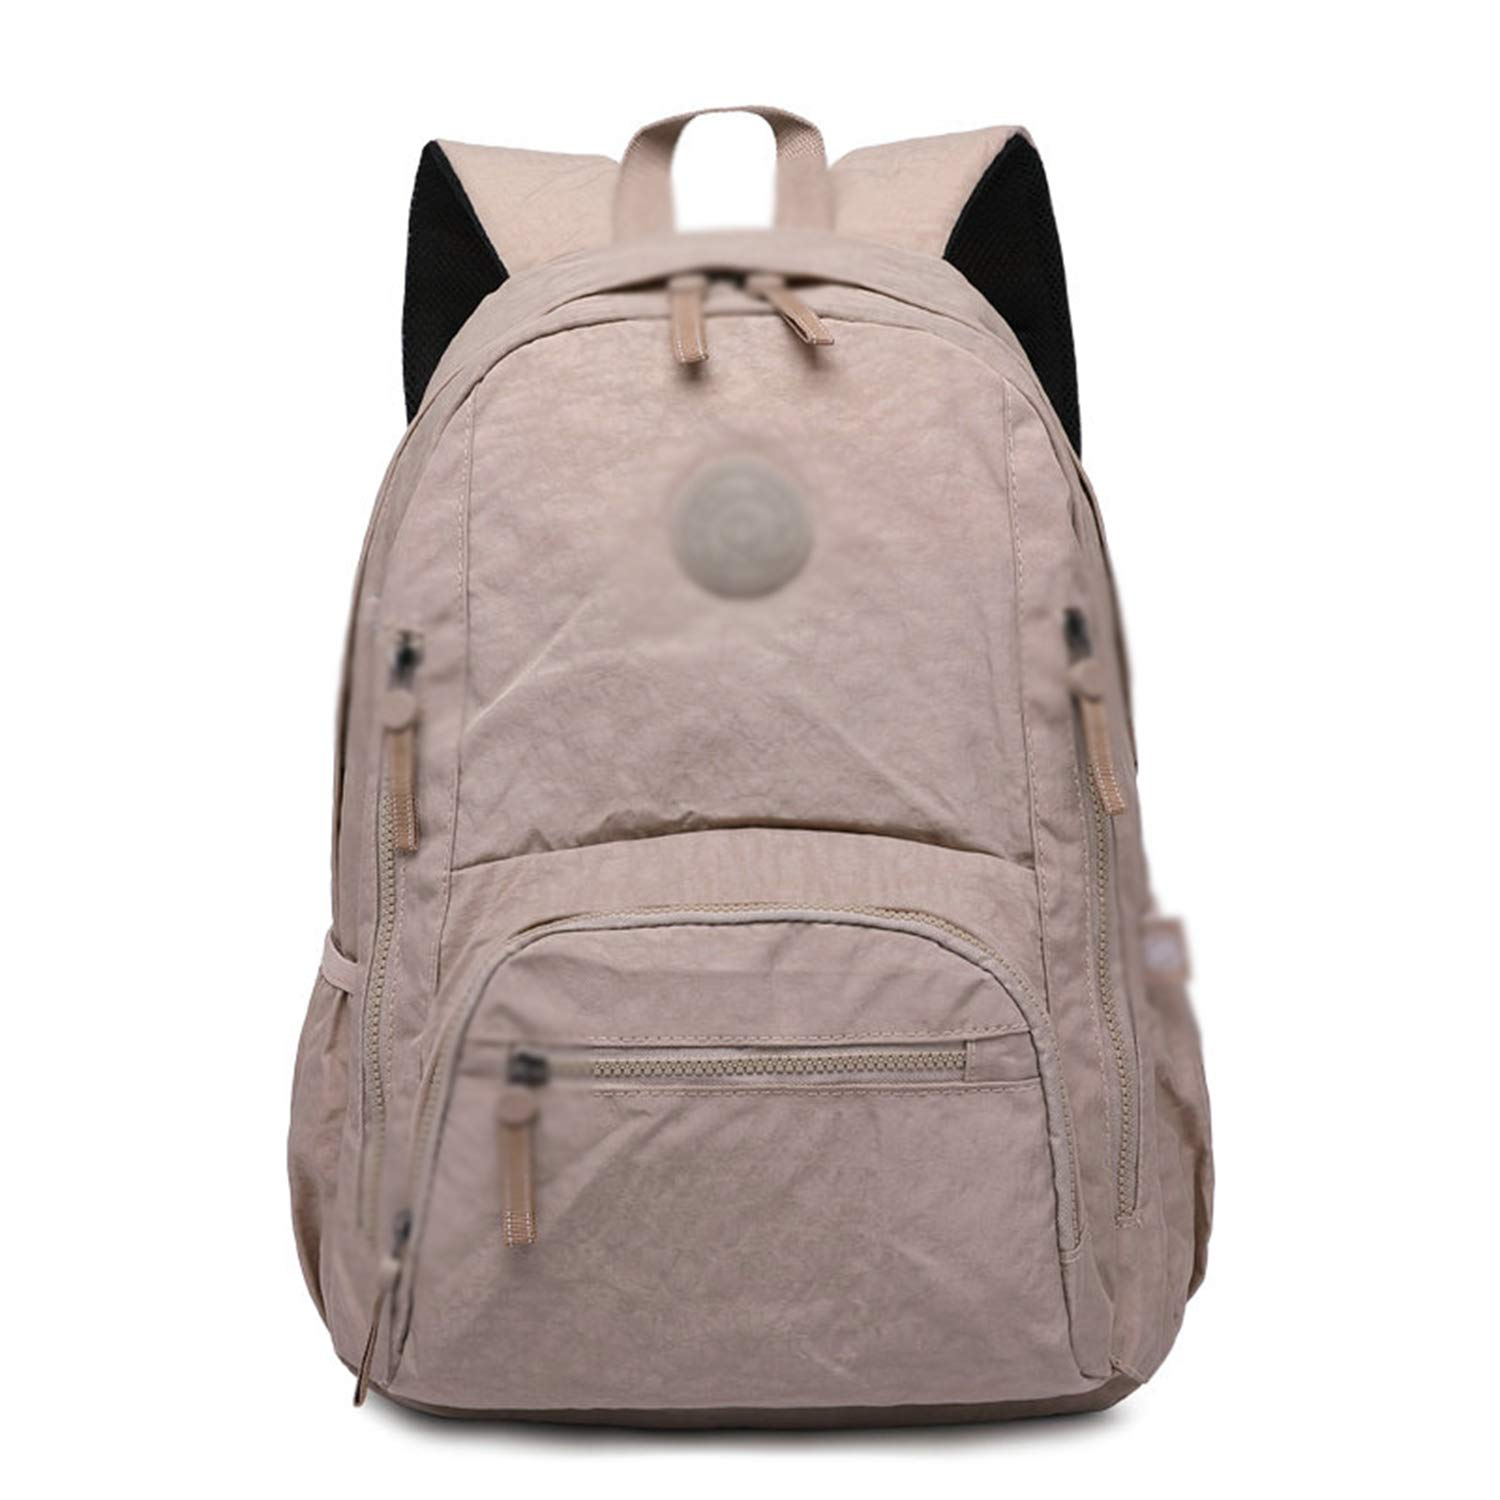 New Bagpack Women Laptop Backpack Leisure School Bagpack for Teenage Girls Boys Mochila Escolar Travel Backpacks Bagss